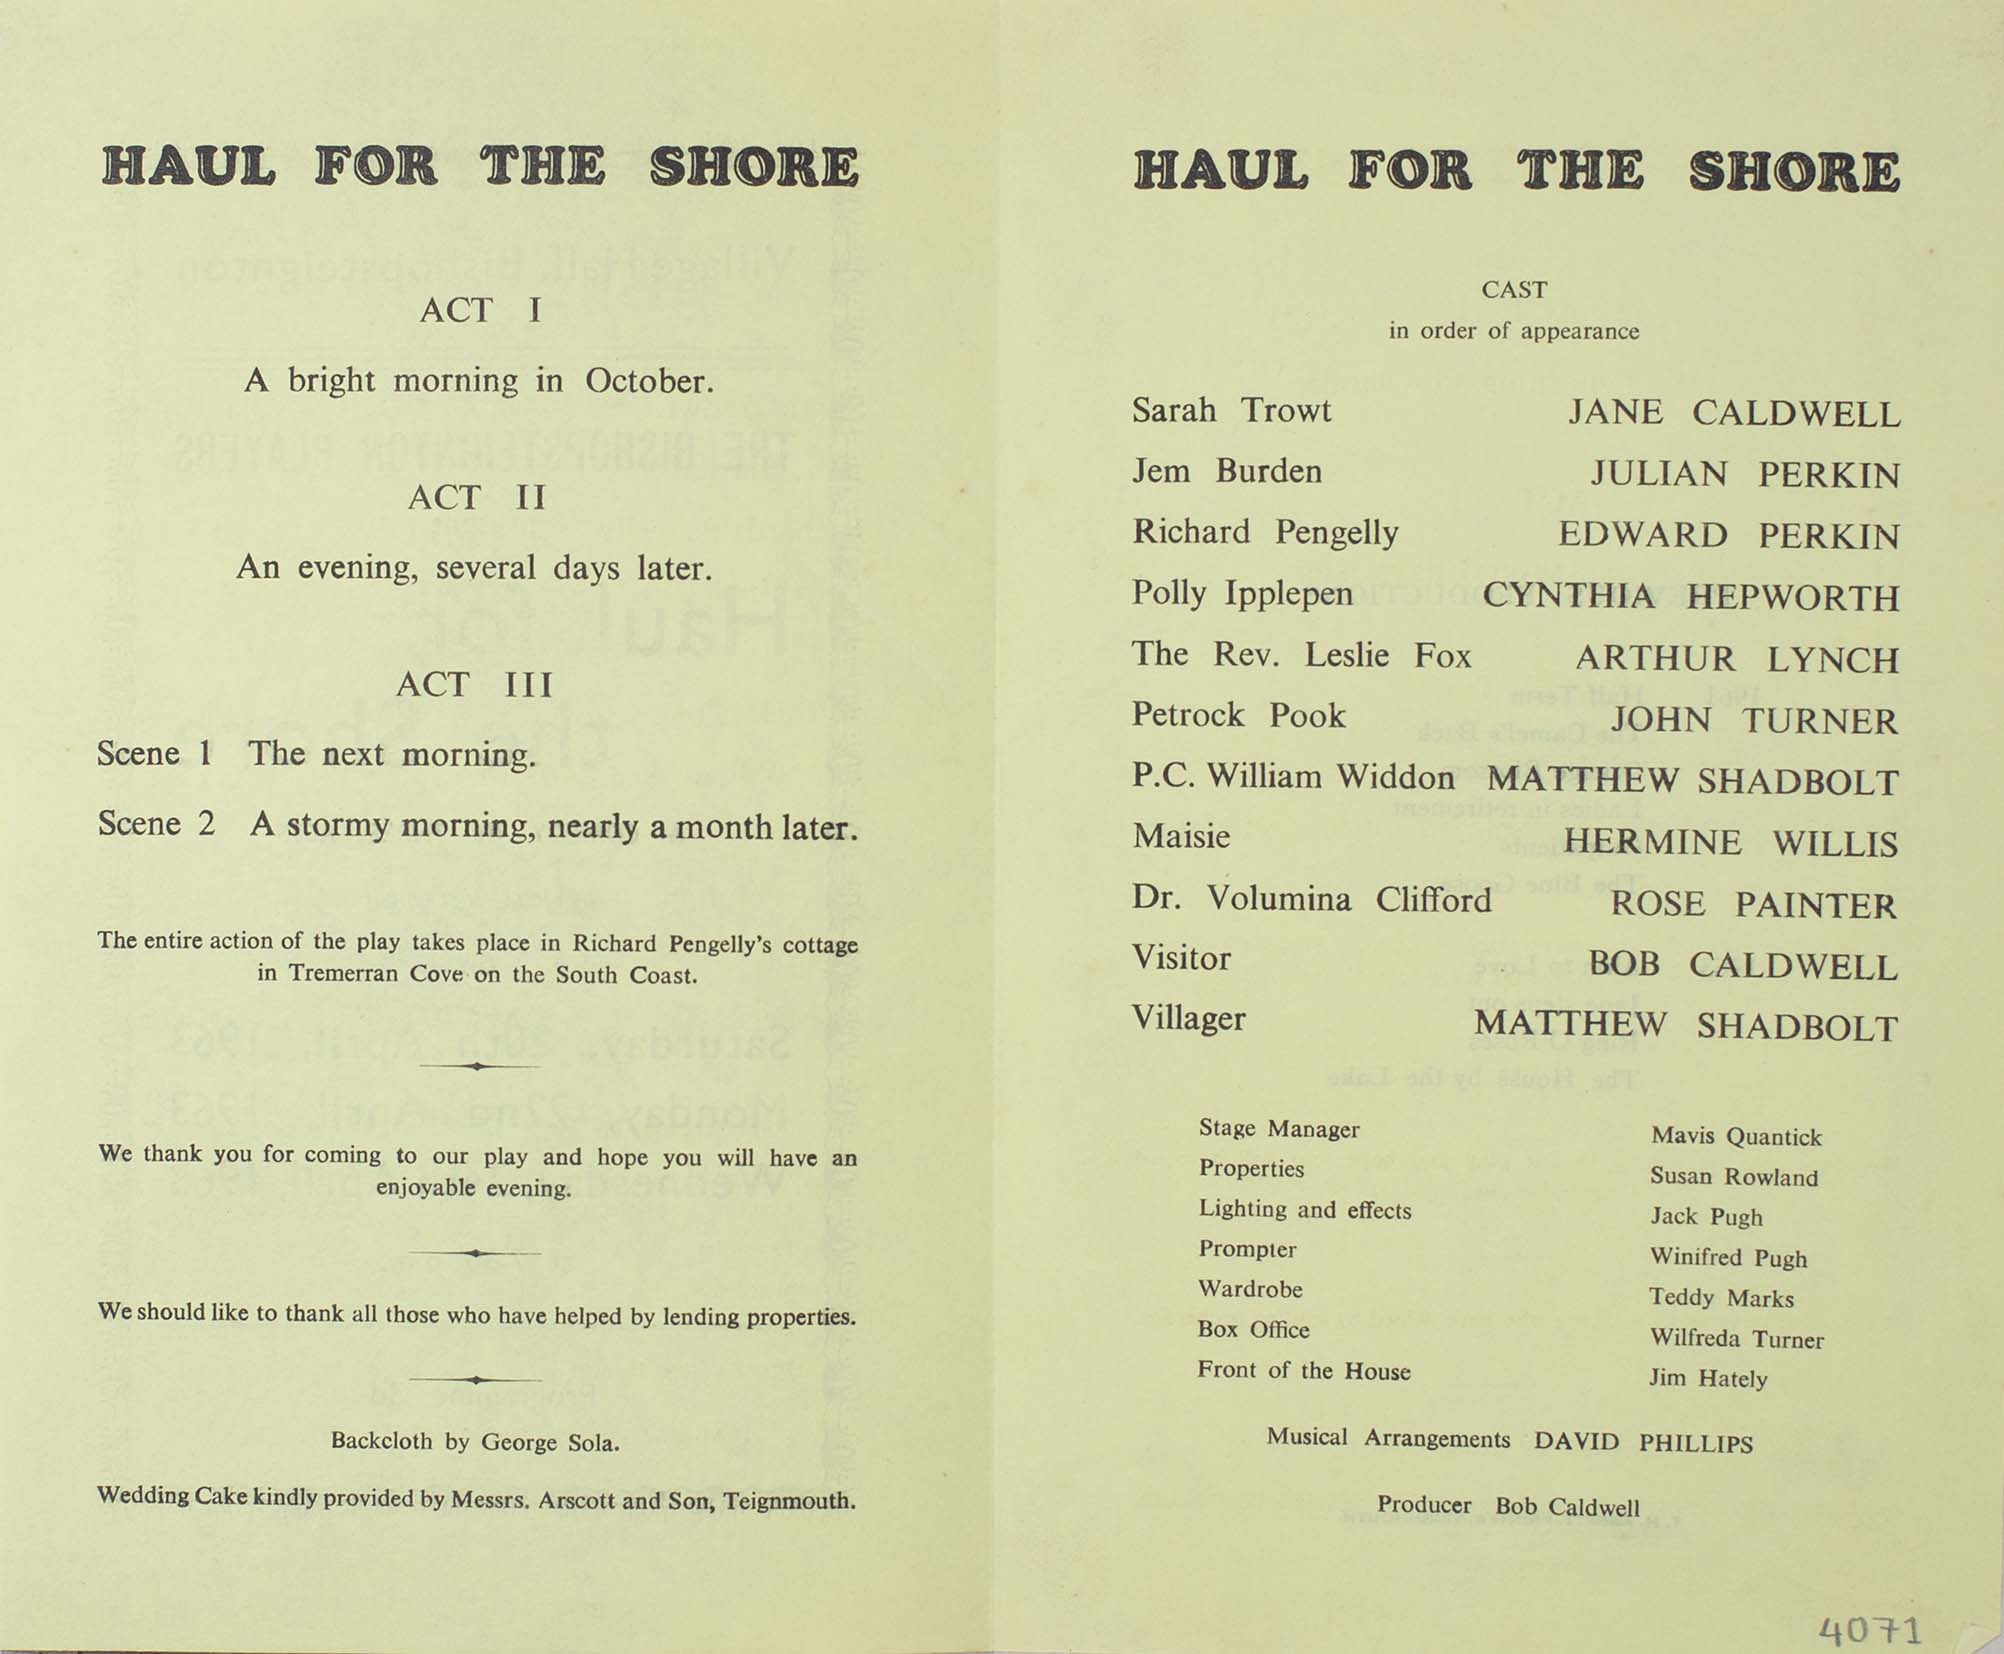 Leaflet to advertise the programme for the play 'Haul for the Shore' presented by the Bishopsteignton Players 1963 inside